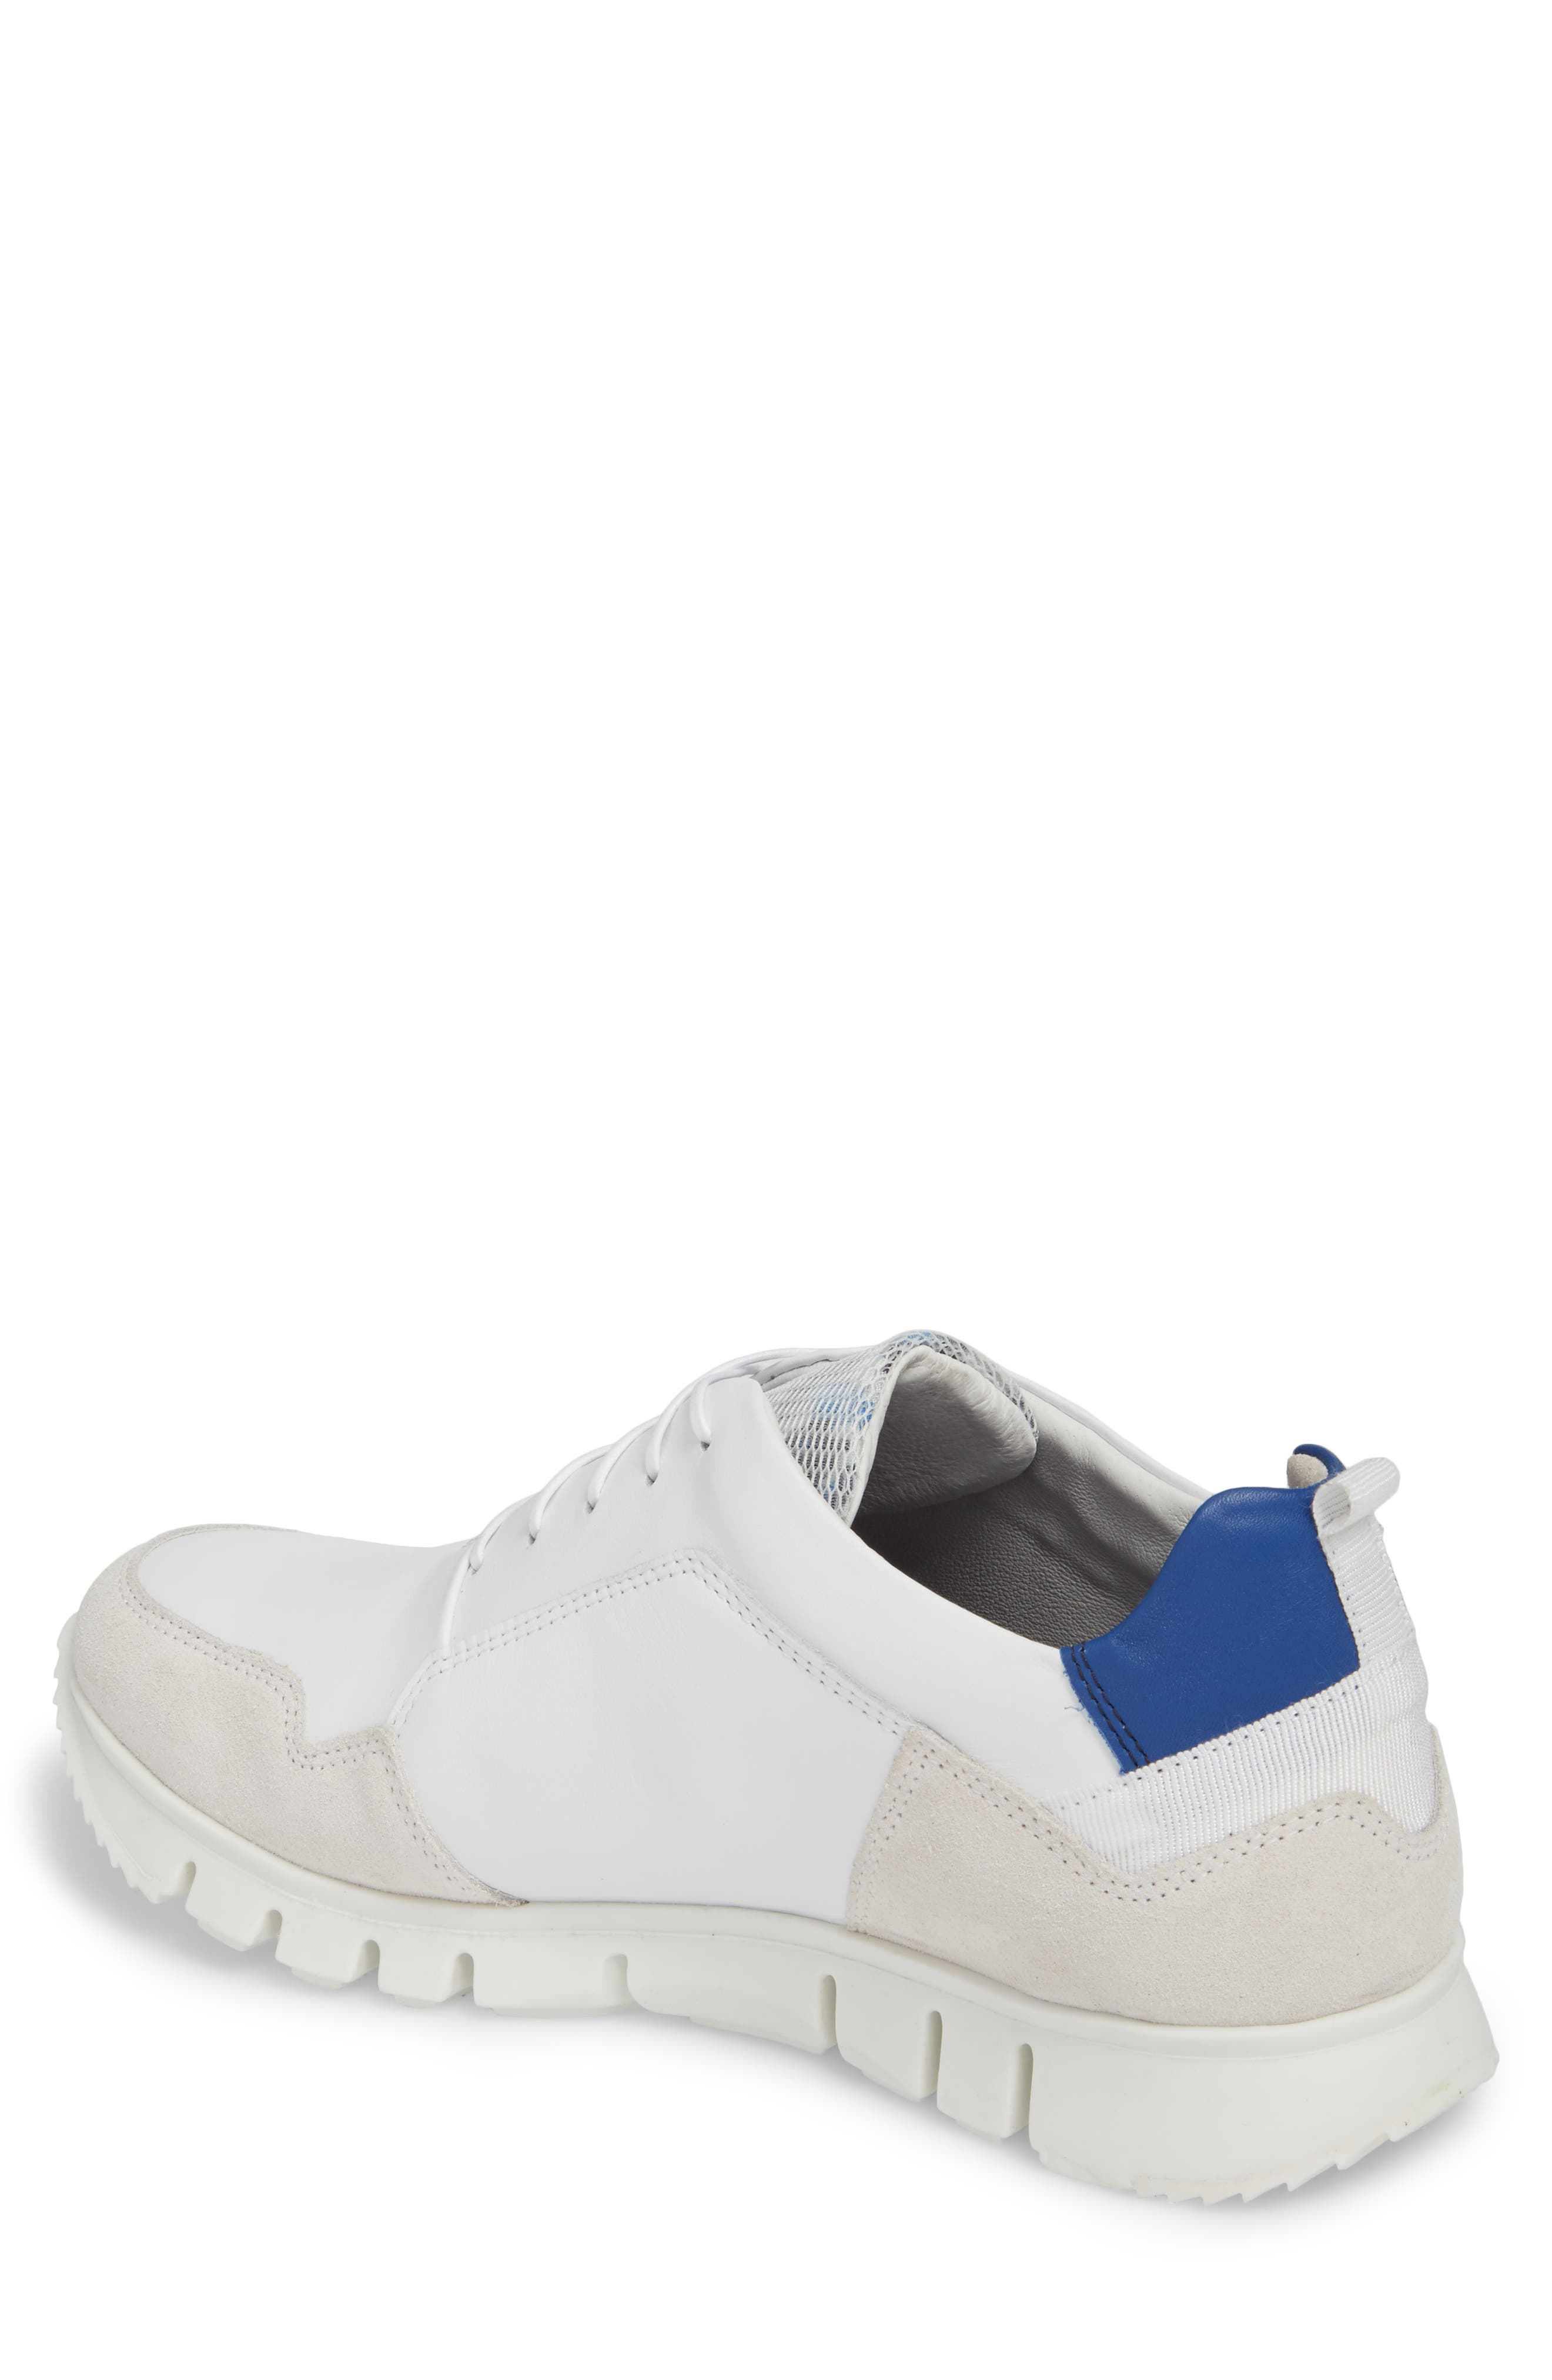 Sild Low Top Sneaker,                             Alternate thumbnail 2, color,                             WHITE SUEDE/ LEATHER